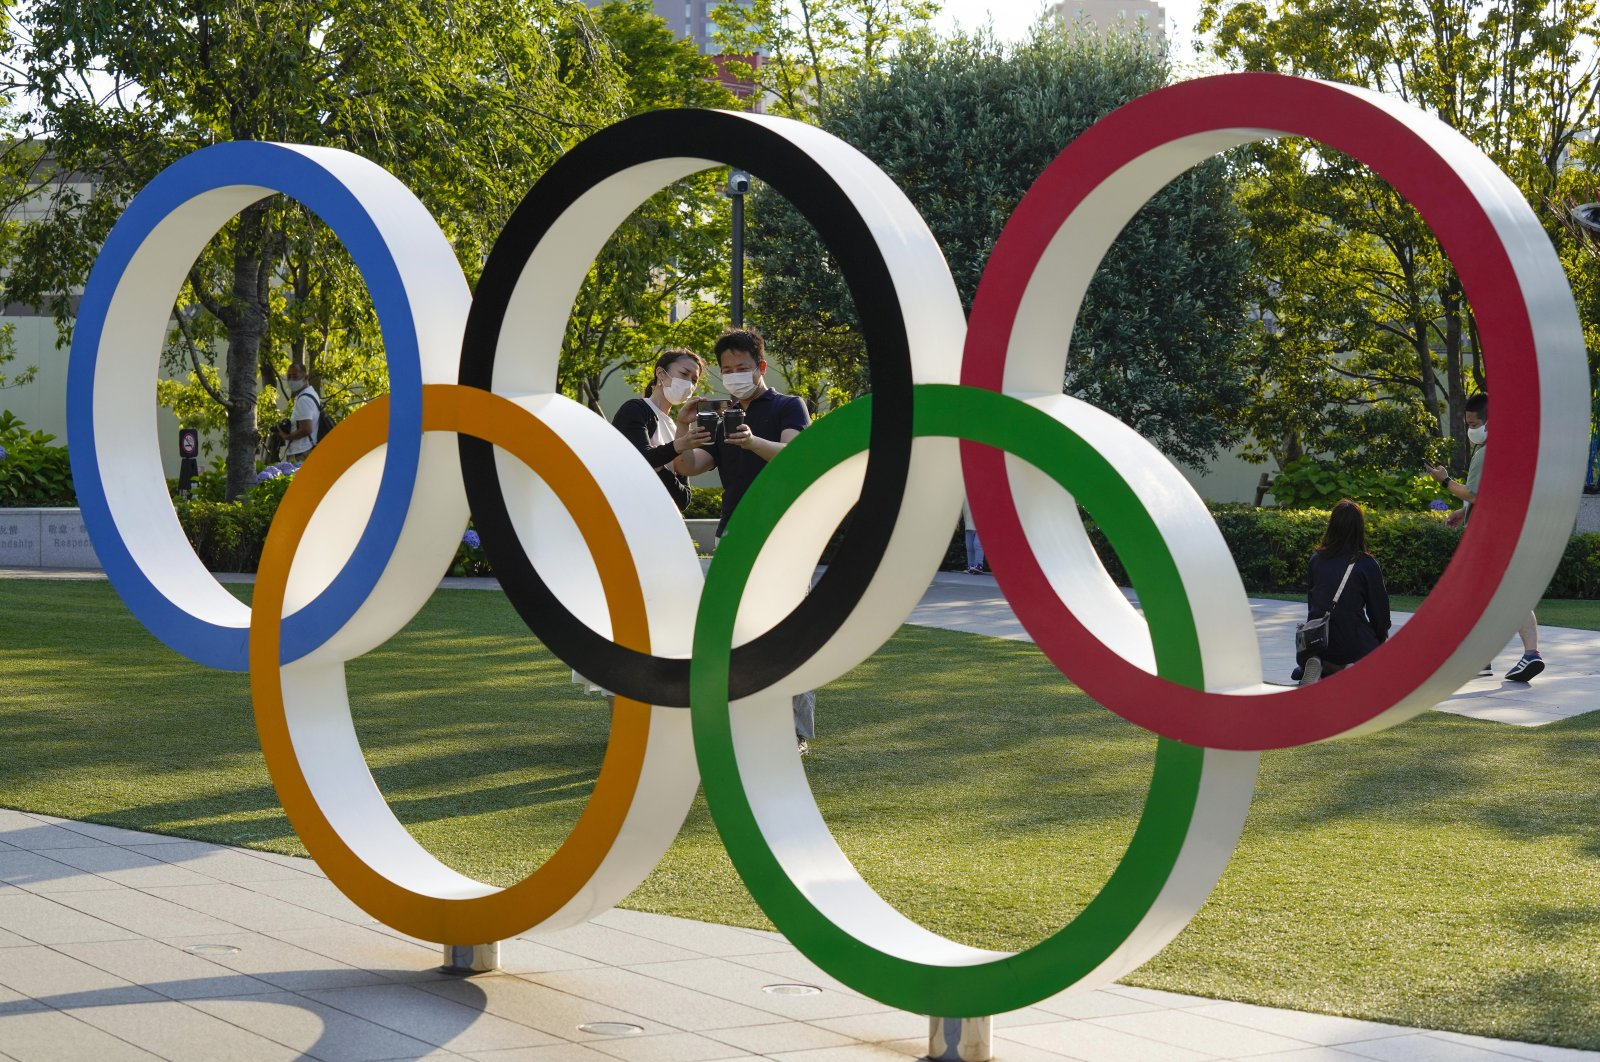 The Olympic Rings monument near National Stadium, the main venue of the Tokyo 2020 Olympics and Paralympics, Tokyo, Japan, June 17, 2021. (EPA Photo)